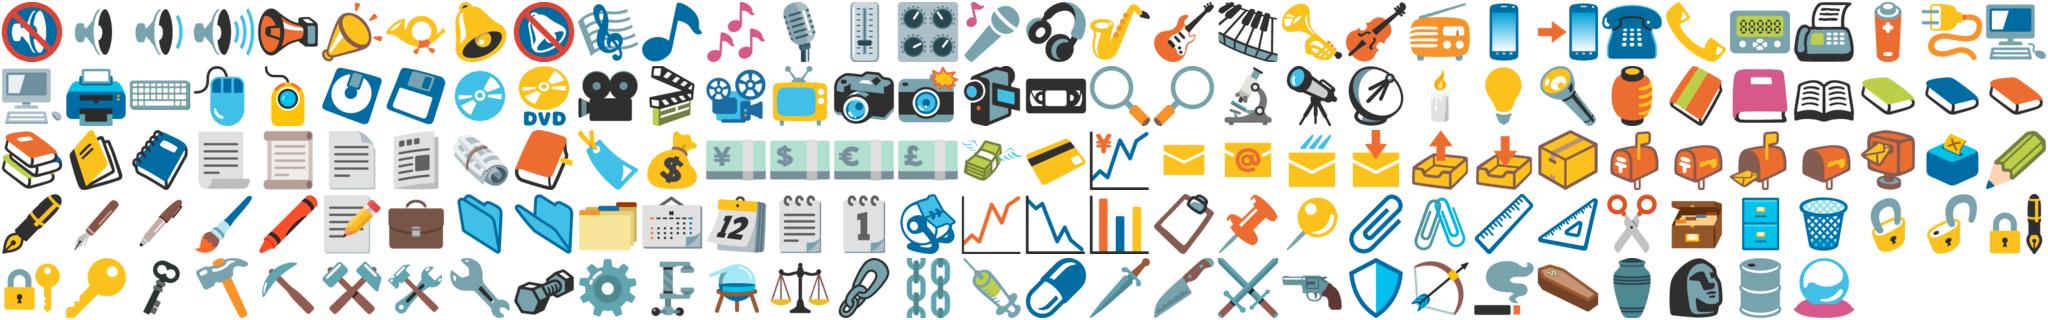 briar-android/assets/emoji_objects.png